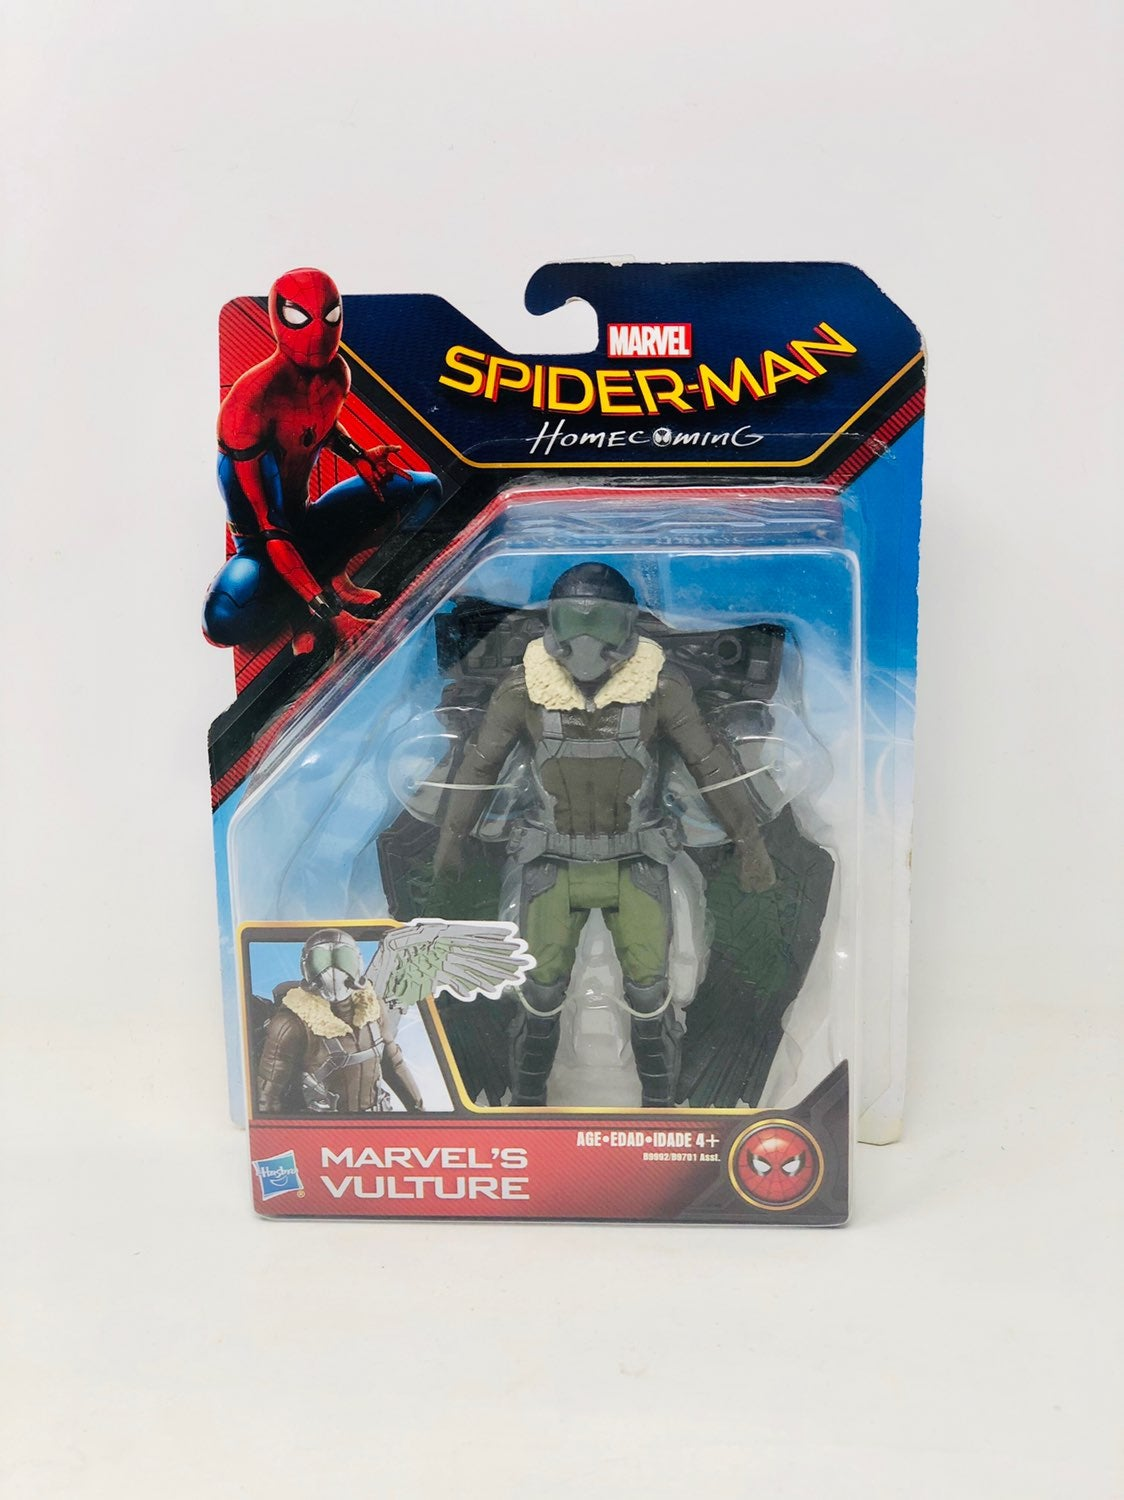 Spider-Man: Marvel Homecoming Vulture